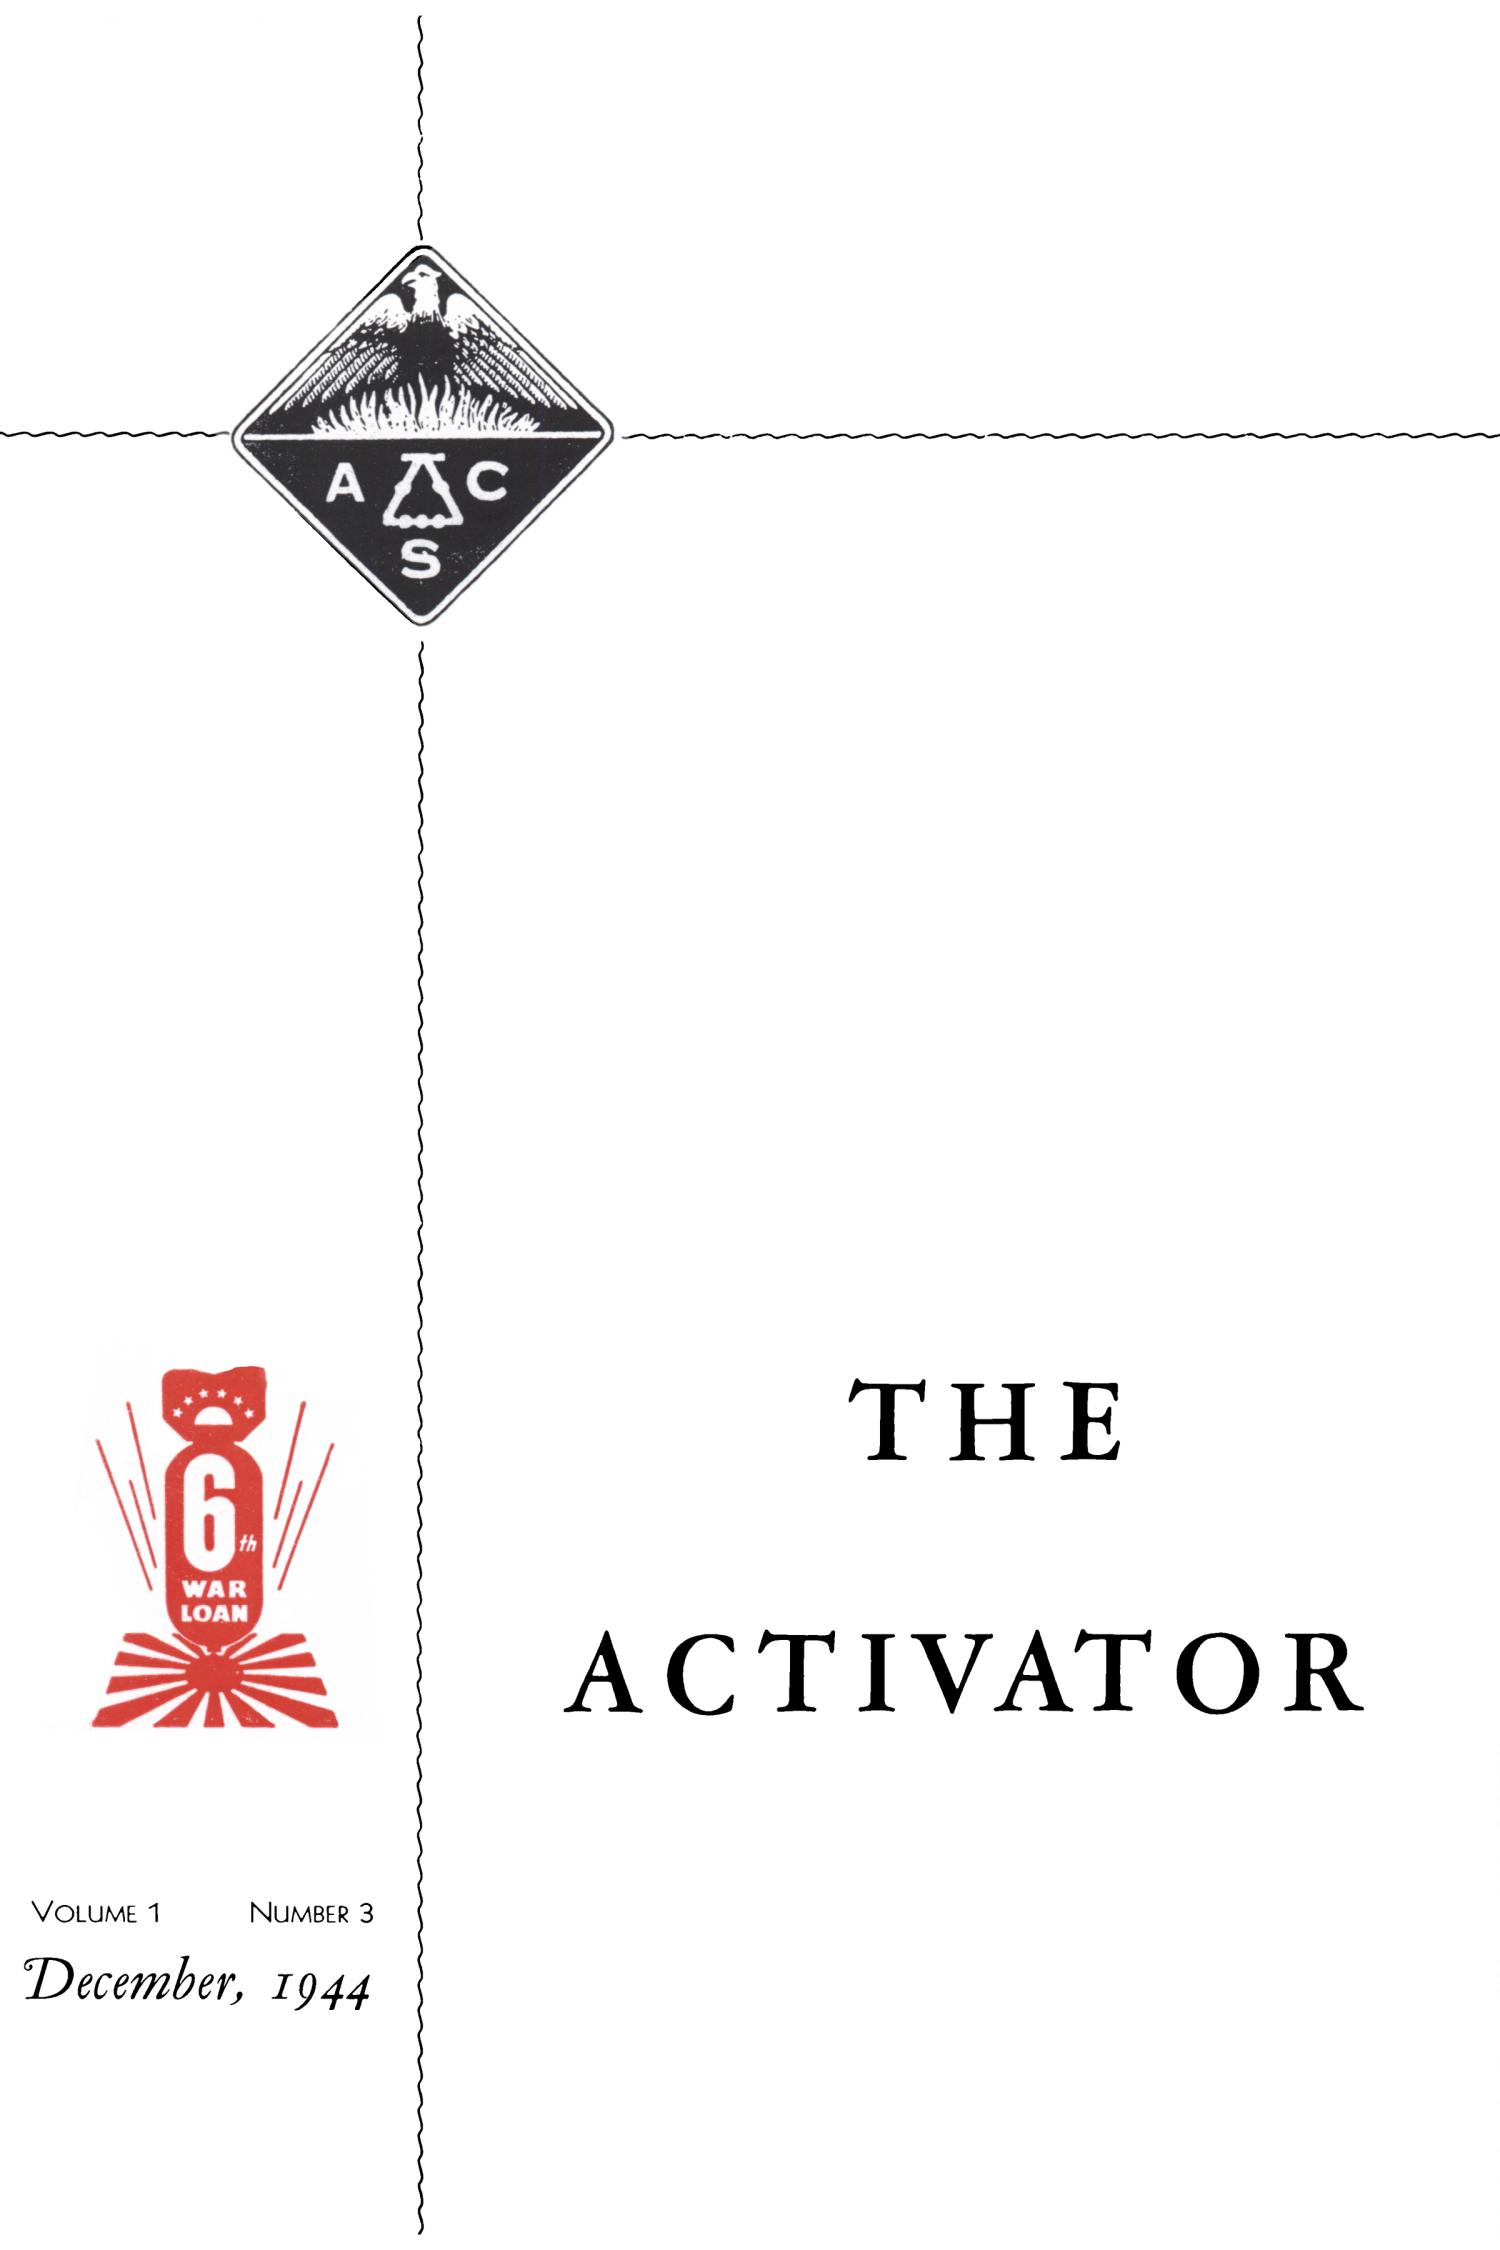 The Activator, Volume 1 , Number 3, December 1944                                                                                                      [Sequence #]: 1 of 24